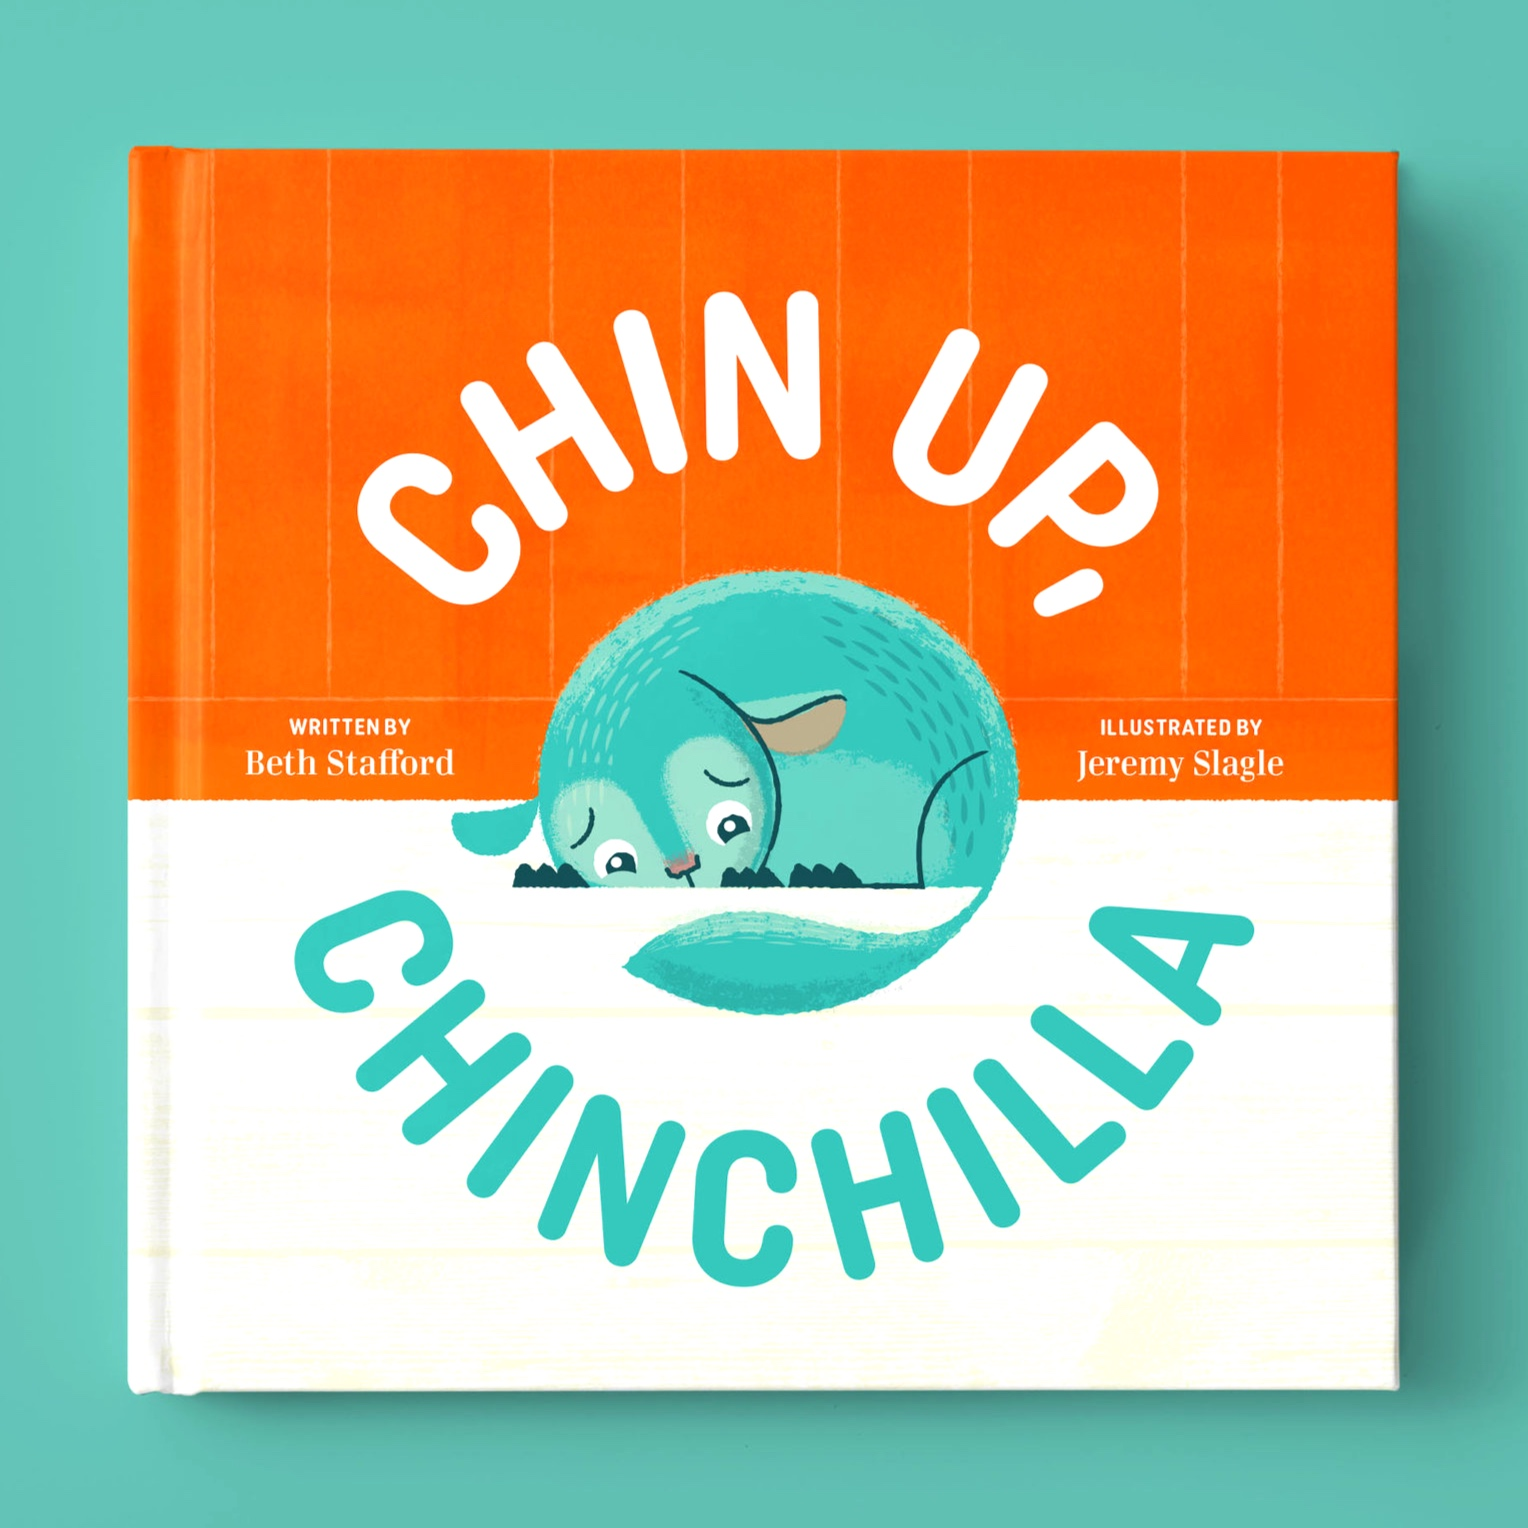 Chin Up Chinchilla